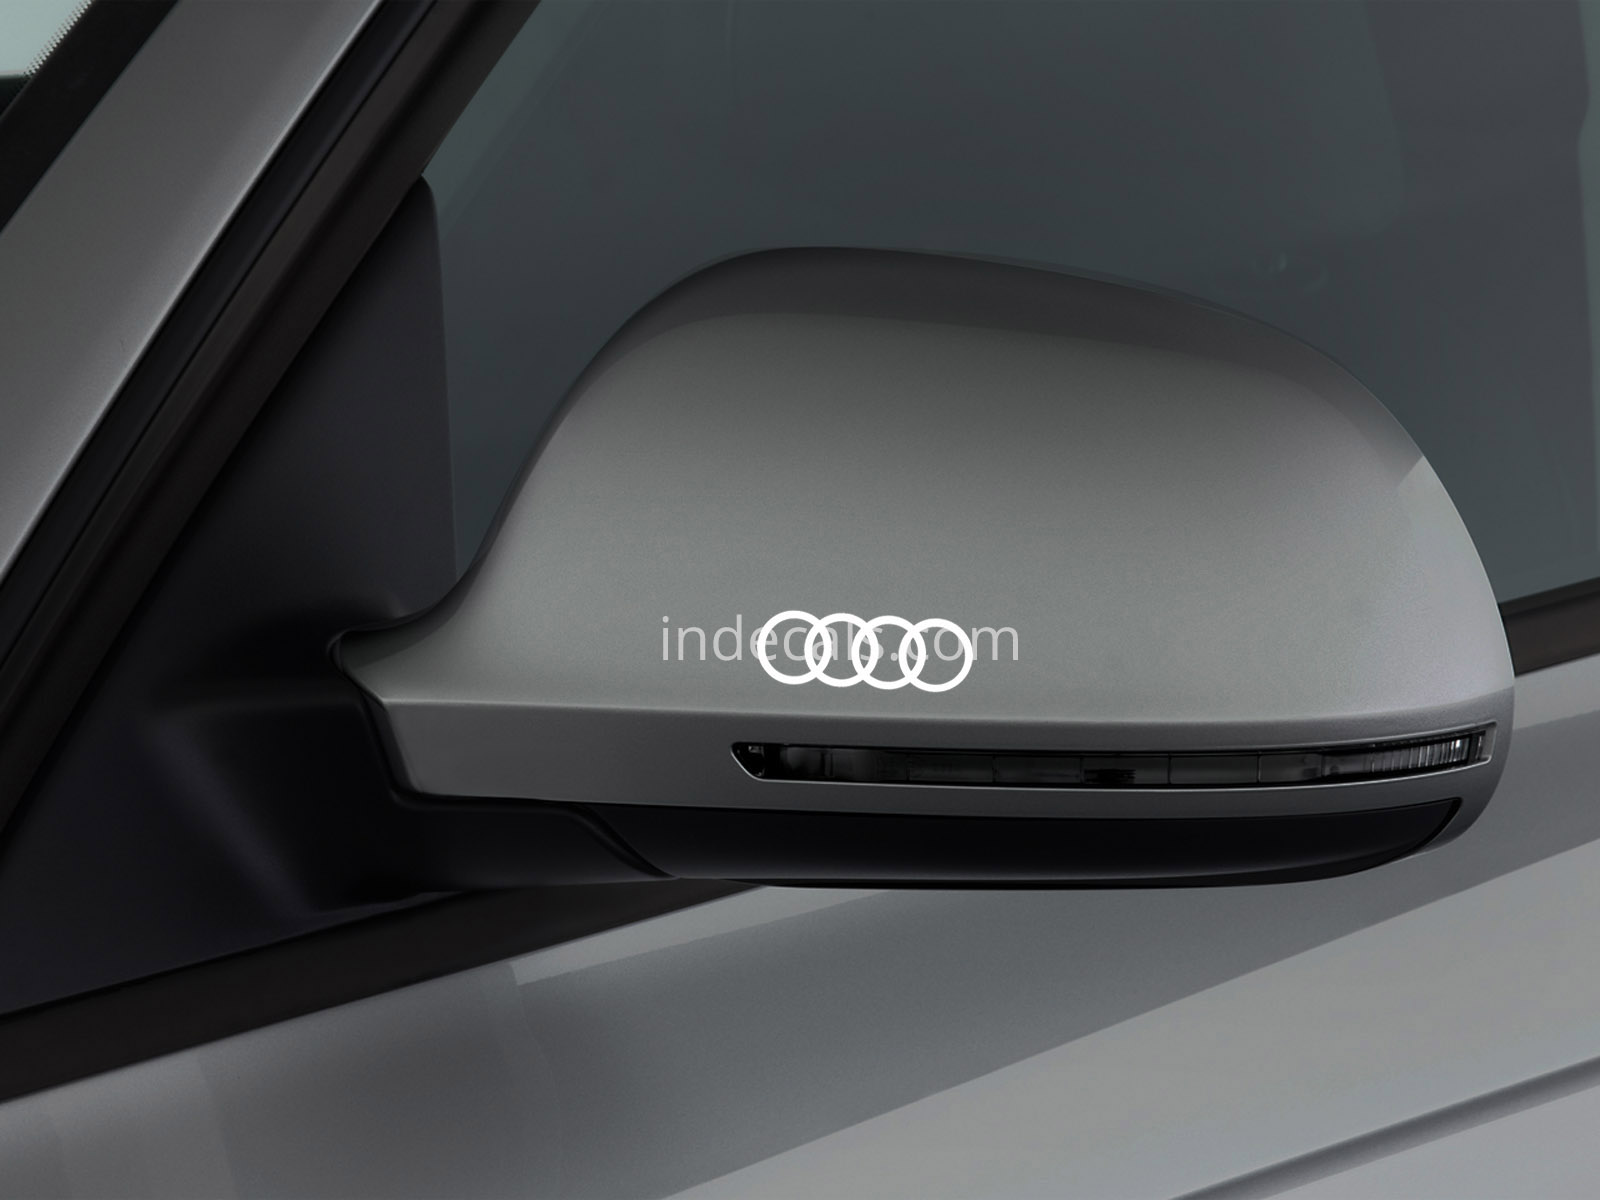 3 x Audi Rings Stickers for Mirror Cover - White